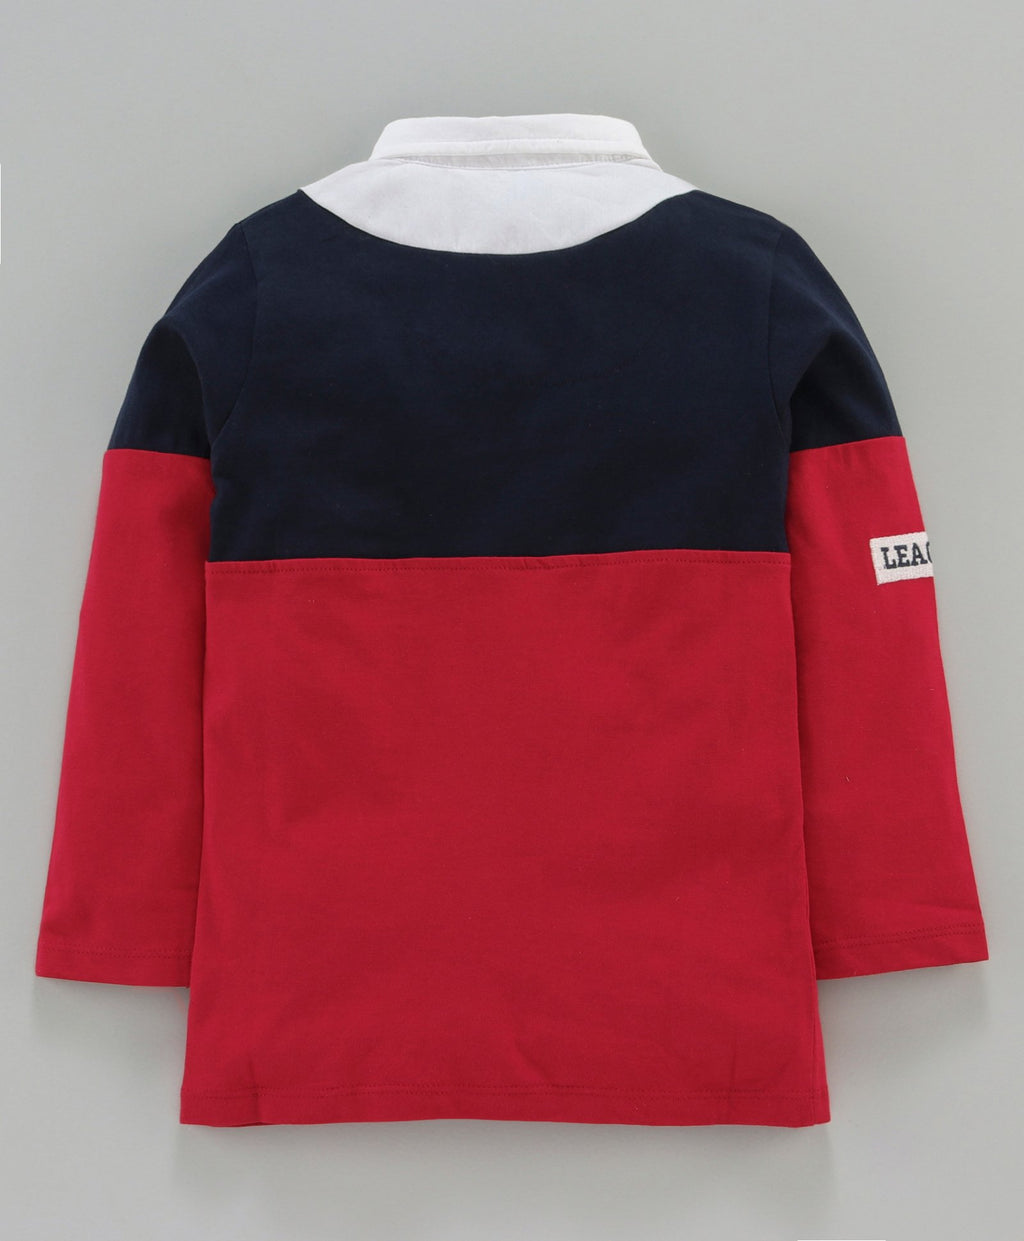 Jus Cubs 83 Print Full Sleeves Polo Tee - Red